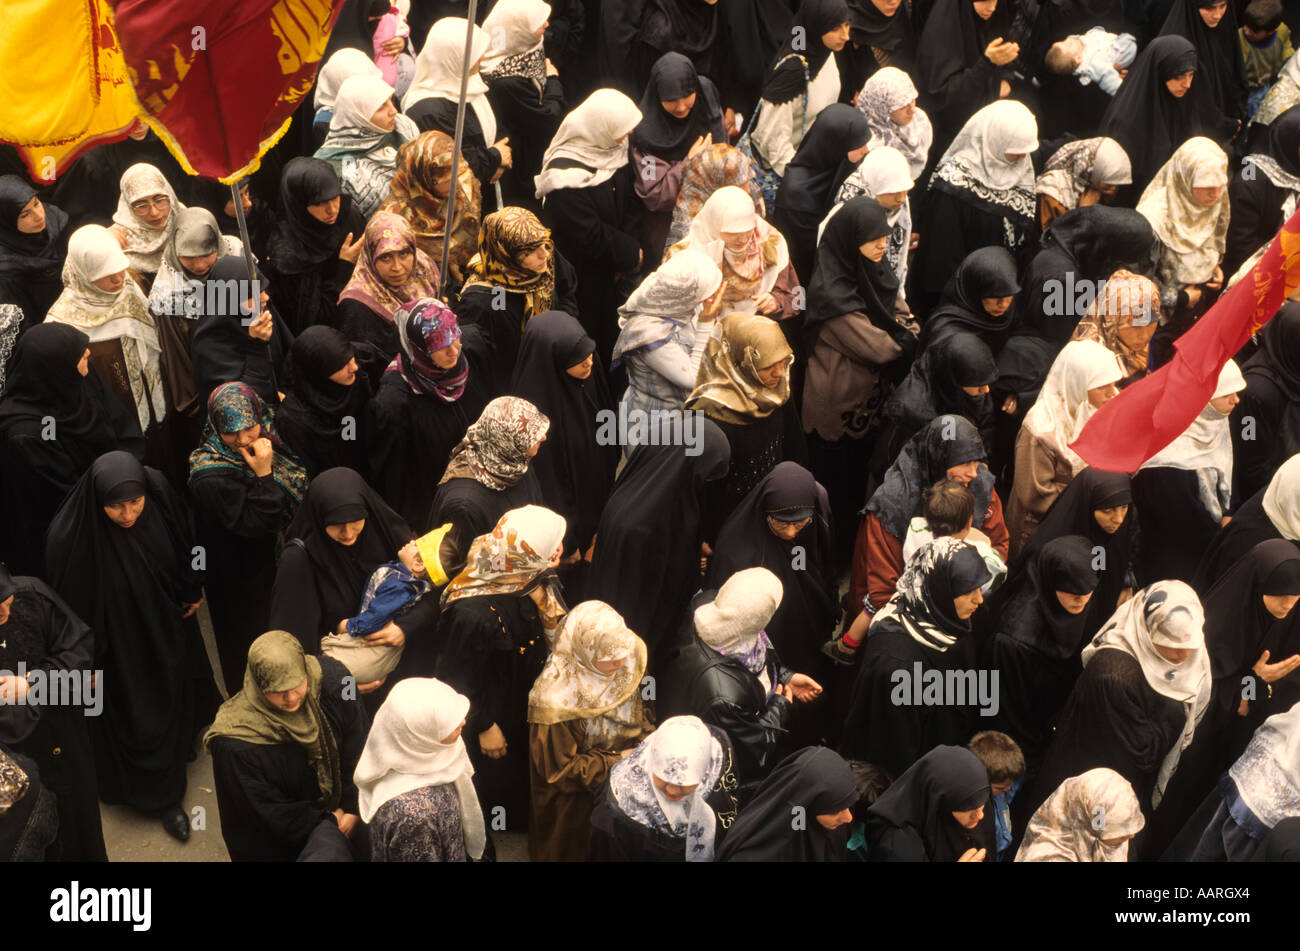 Hezbollah member Funerals with muslim women marching South Lebanon - Stock Image